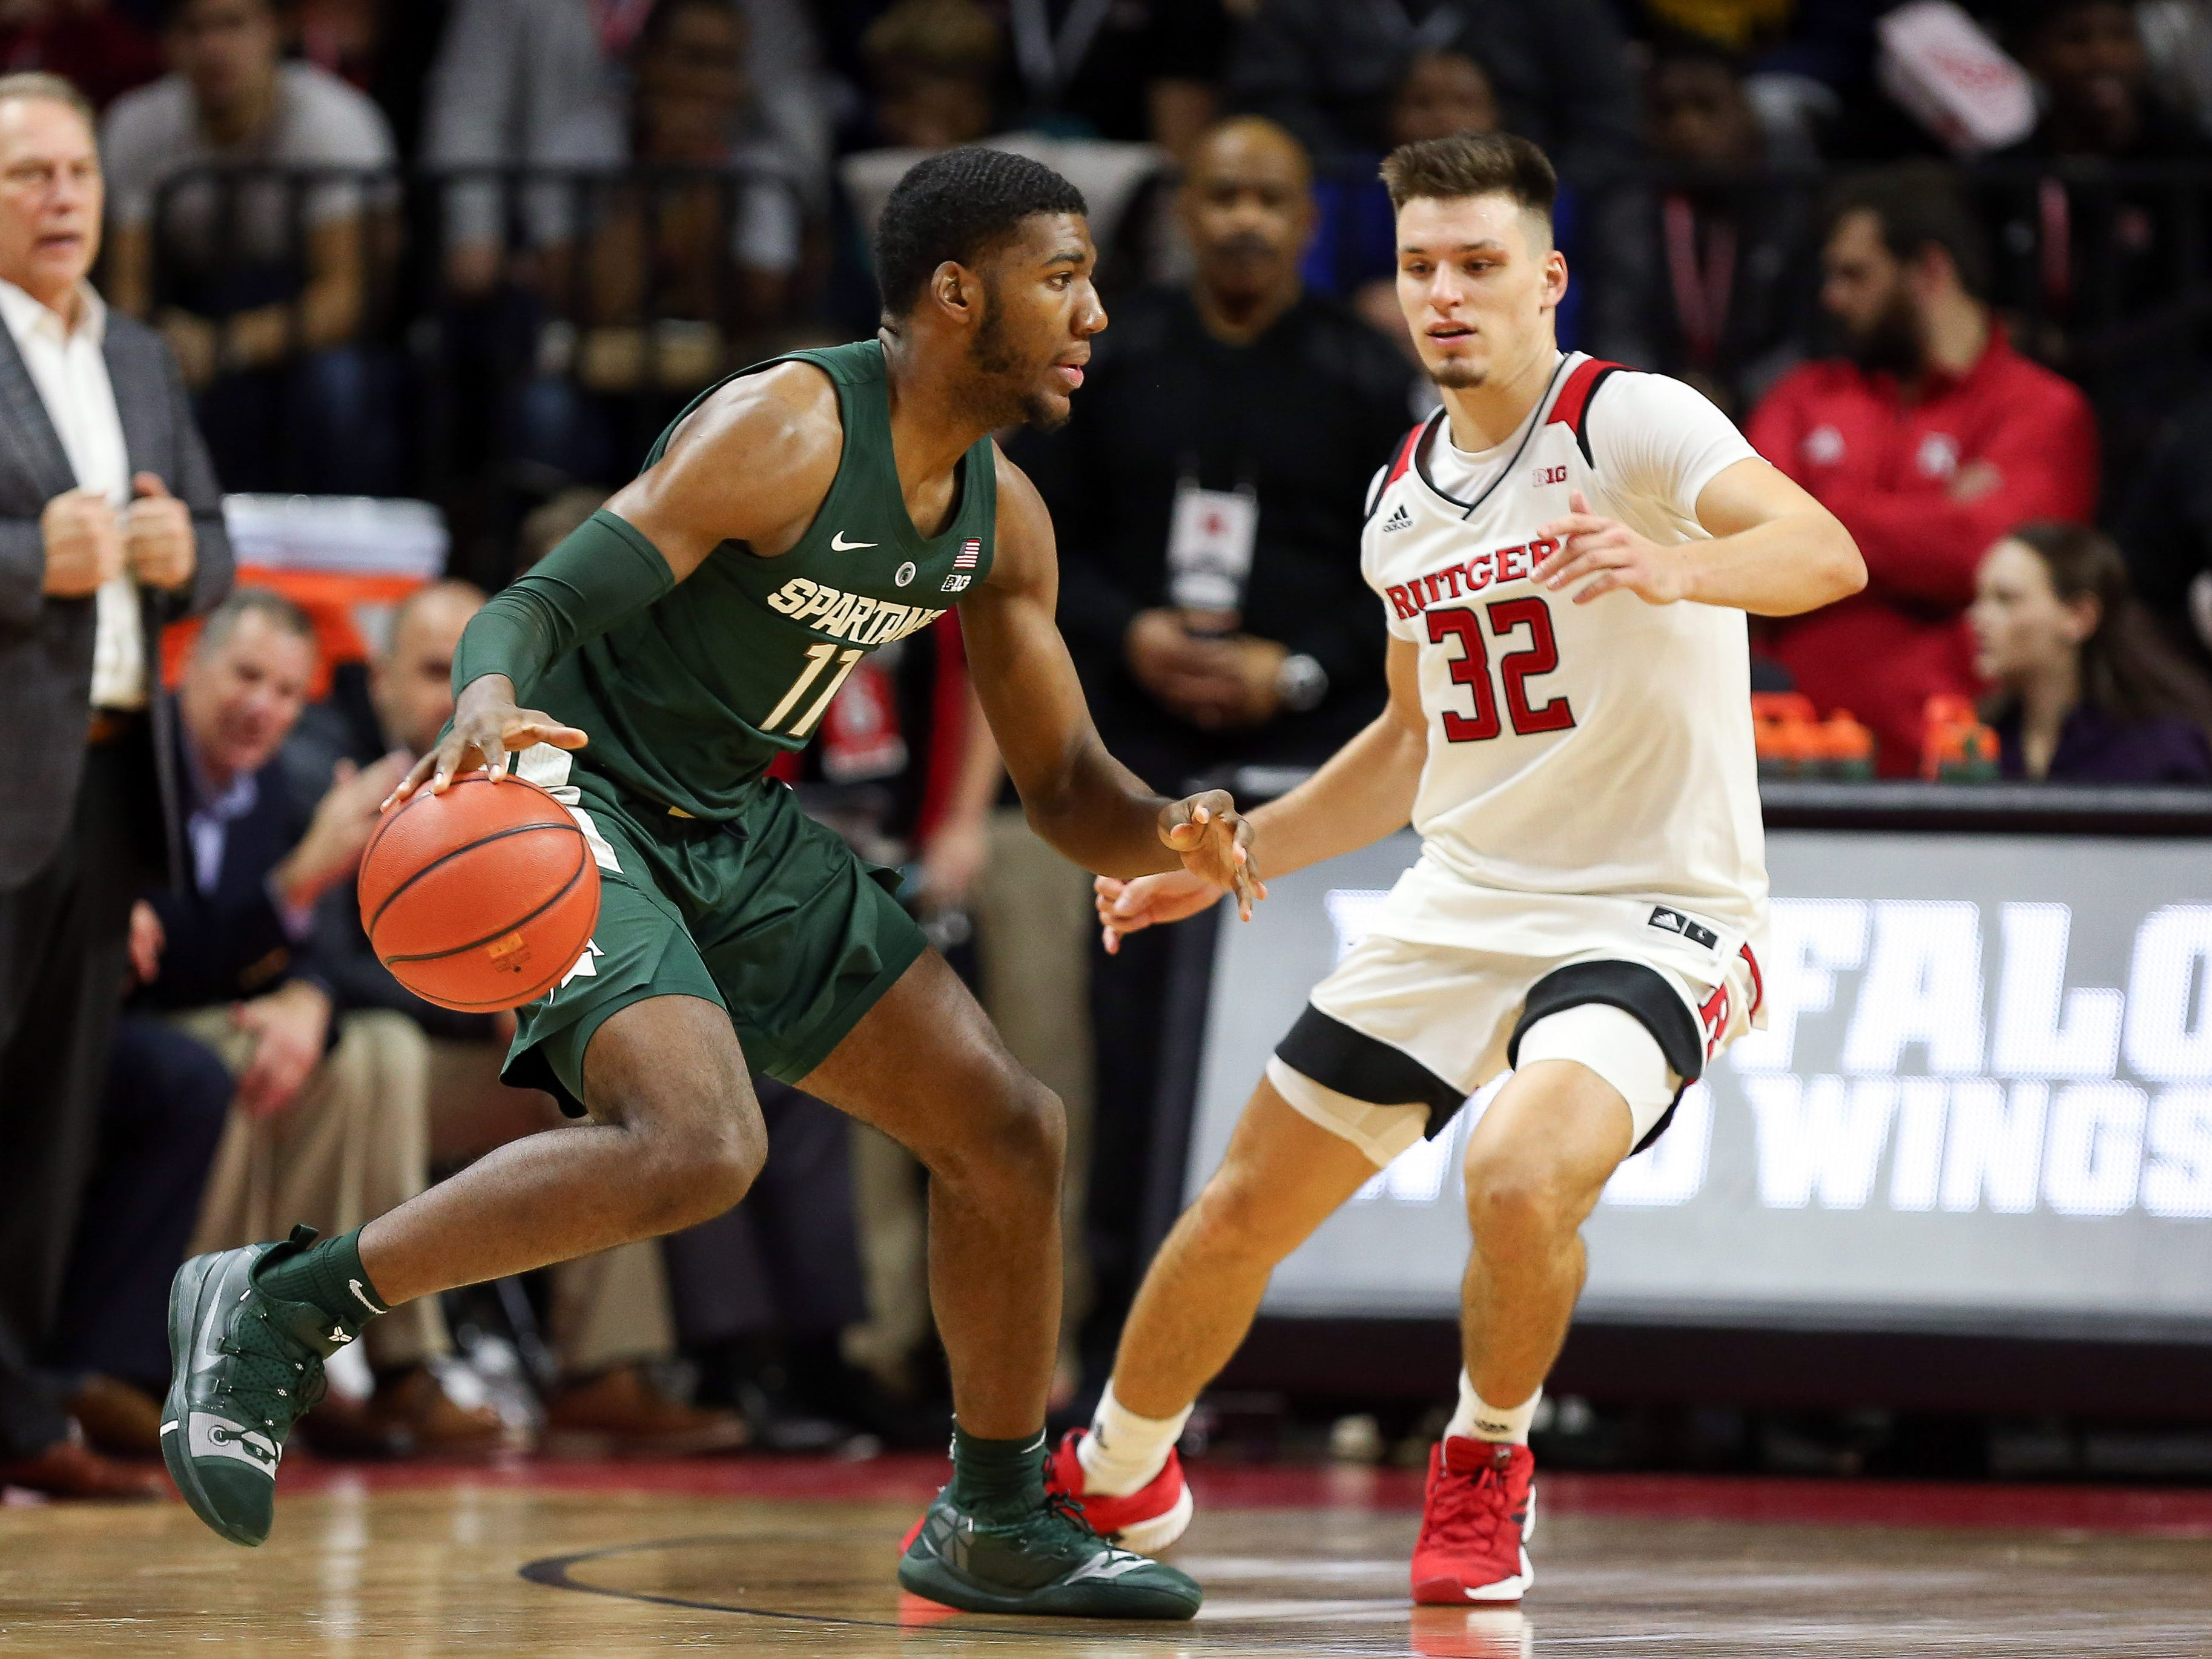 Michigan State Spartans forward Aaron Henry (11) dribbles as Rutgers Scarlet Knights guard Peter Kiss (32) defends in front of  head coach Tom Izzo during the second half at Rutgers Athletic Center (RAC).